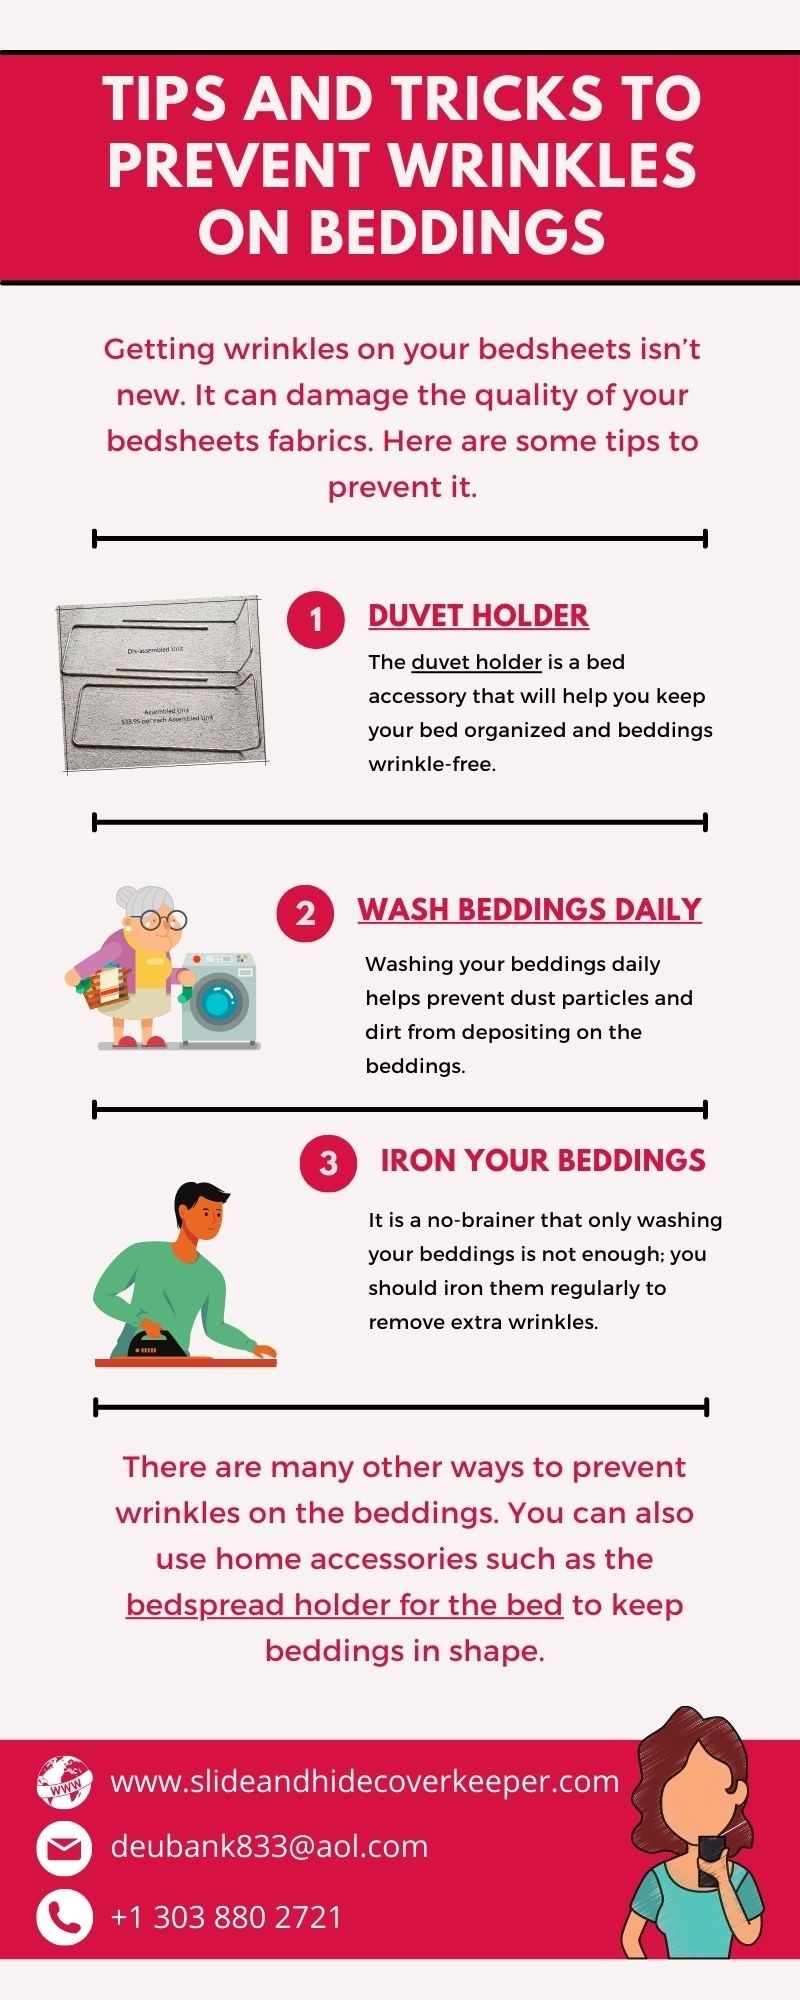 Tips and Tricks to Prevent Wrinkles on Beddings